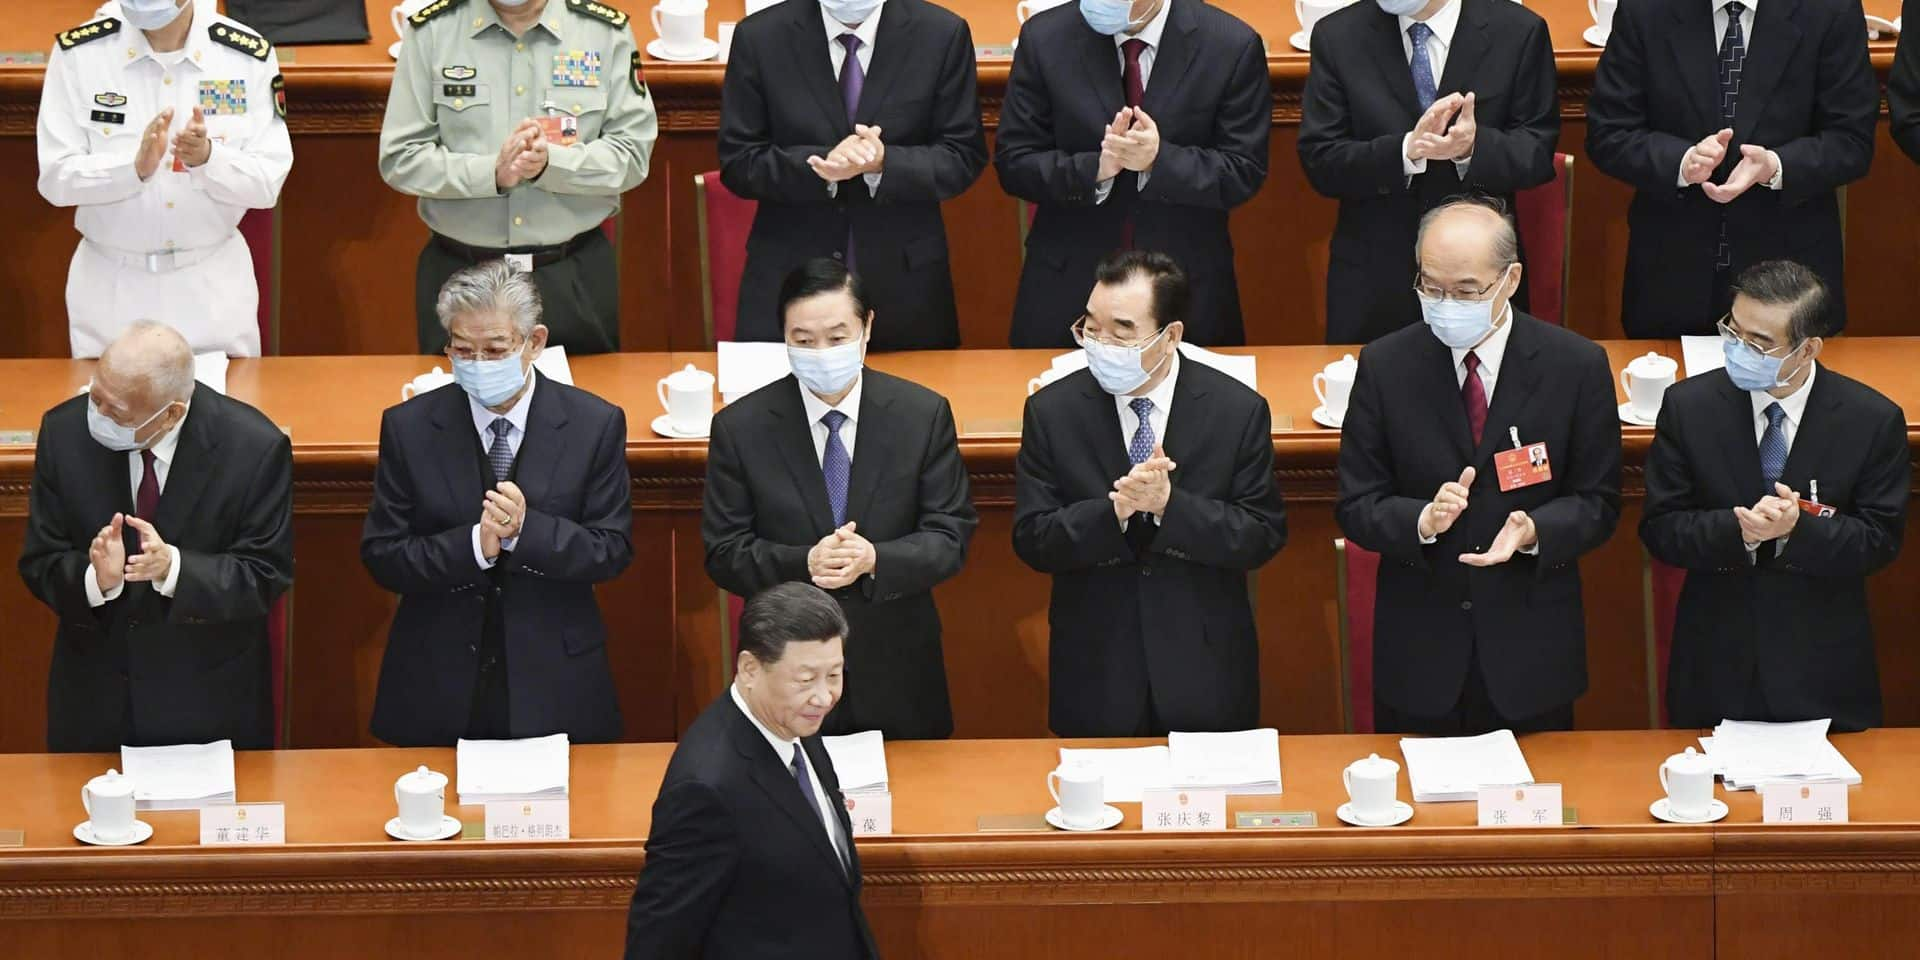 China's annual parliamentary session